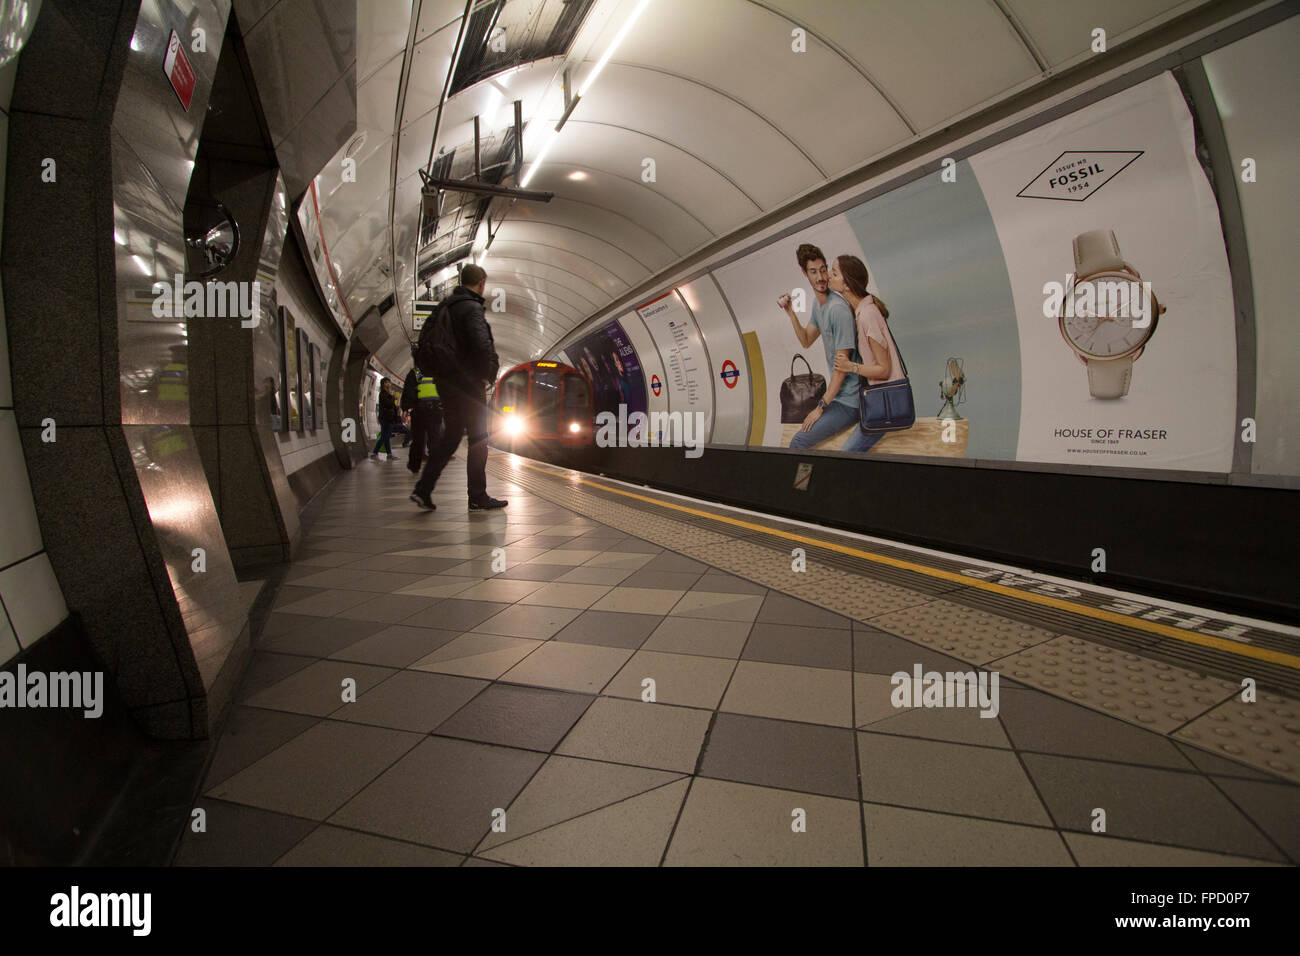 Advertising on London Underground with tube network train, Central Line,  with Fossil watch advert on poster - Stock Image